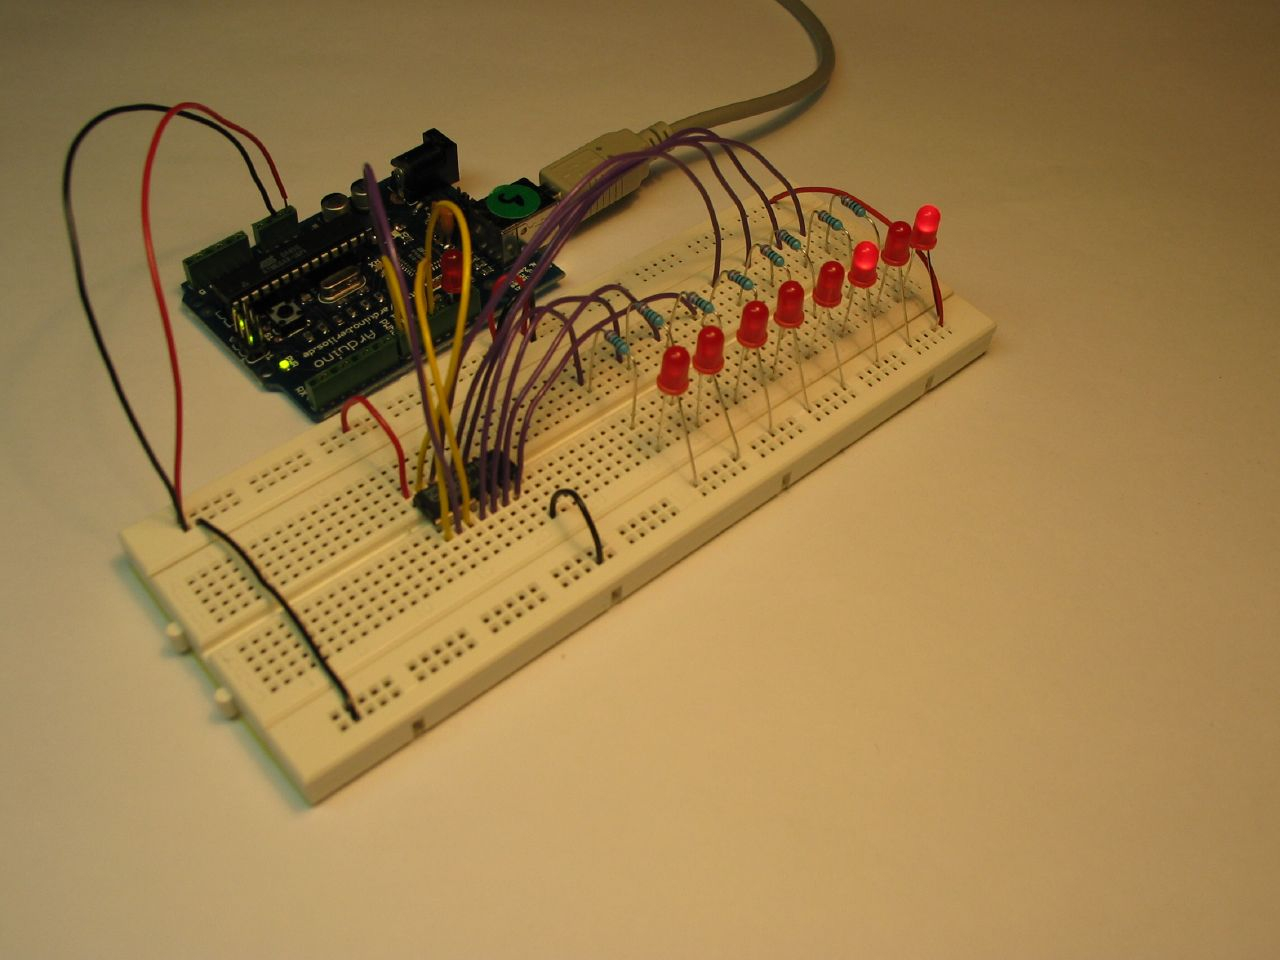 Why is it necessary to use a resistor in series with an LED?